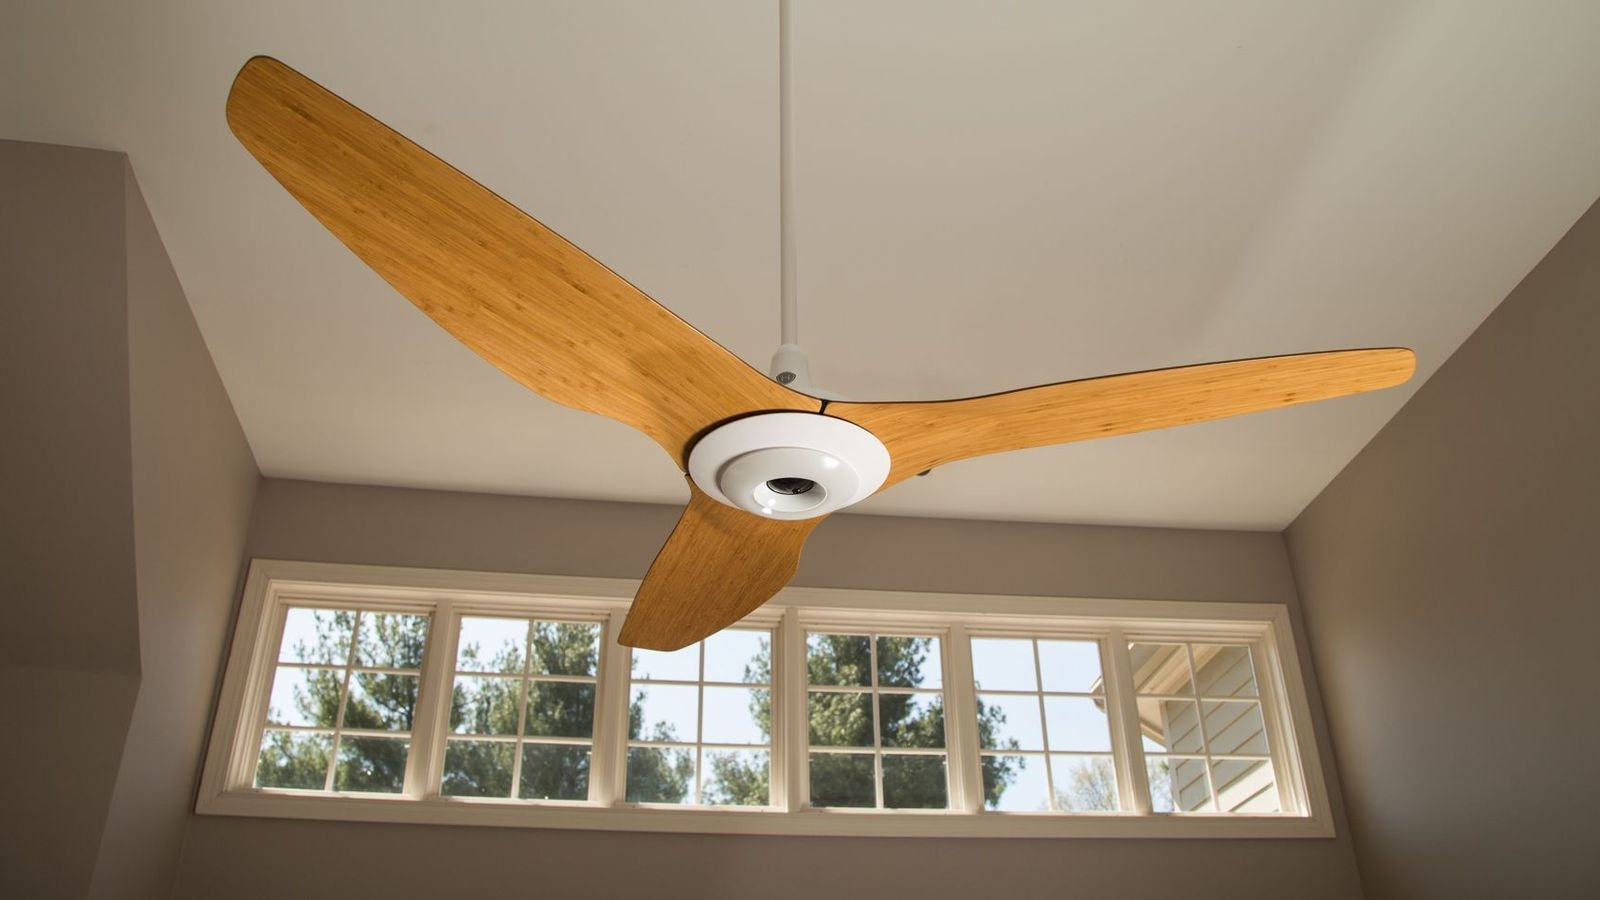 Most Recent Are Connected Ceiling Fans The Ultimate Smart Home Splurge? – Cnet Intended For Expensive Outdoor Ceiling Fans (View 16 of 20)